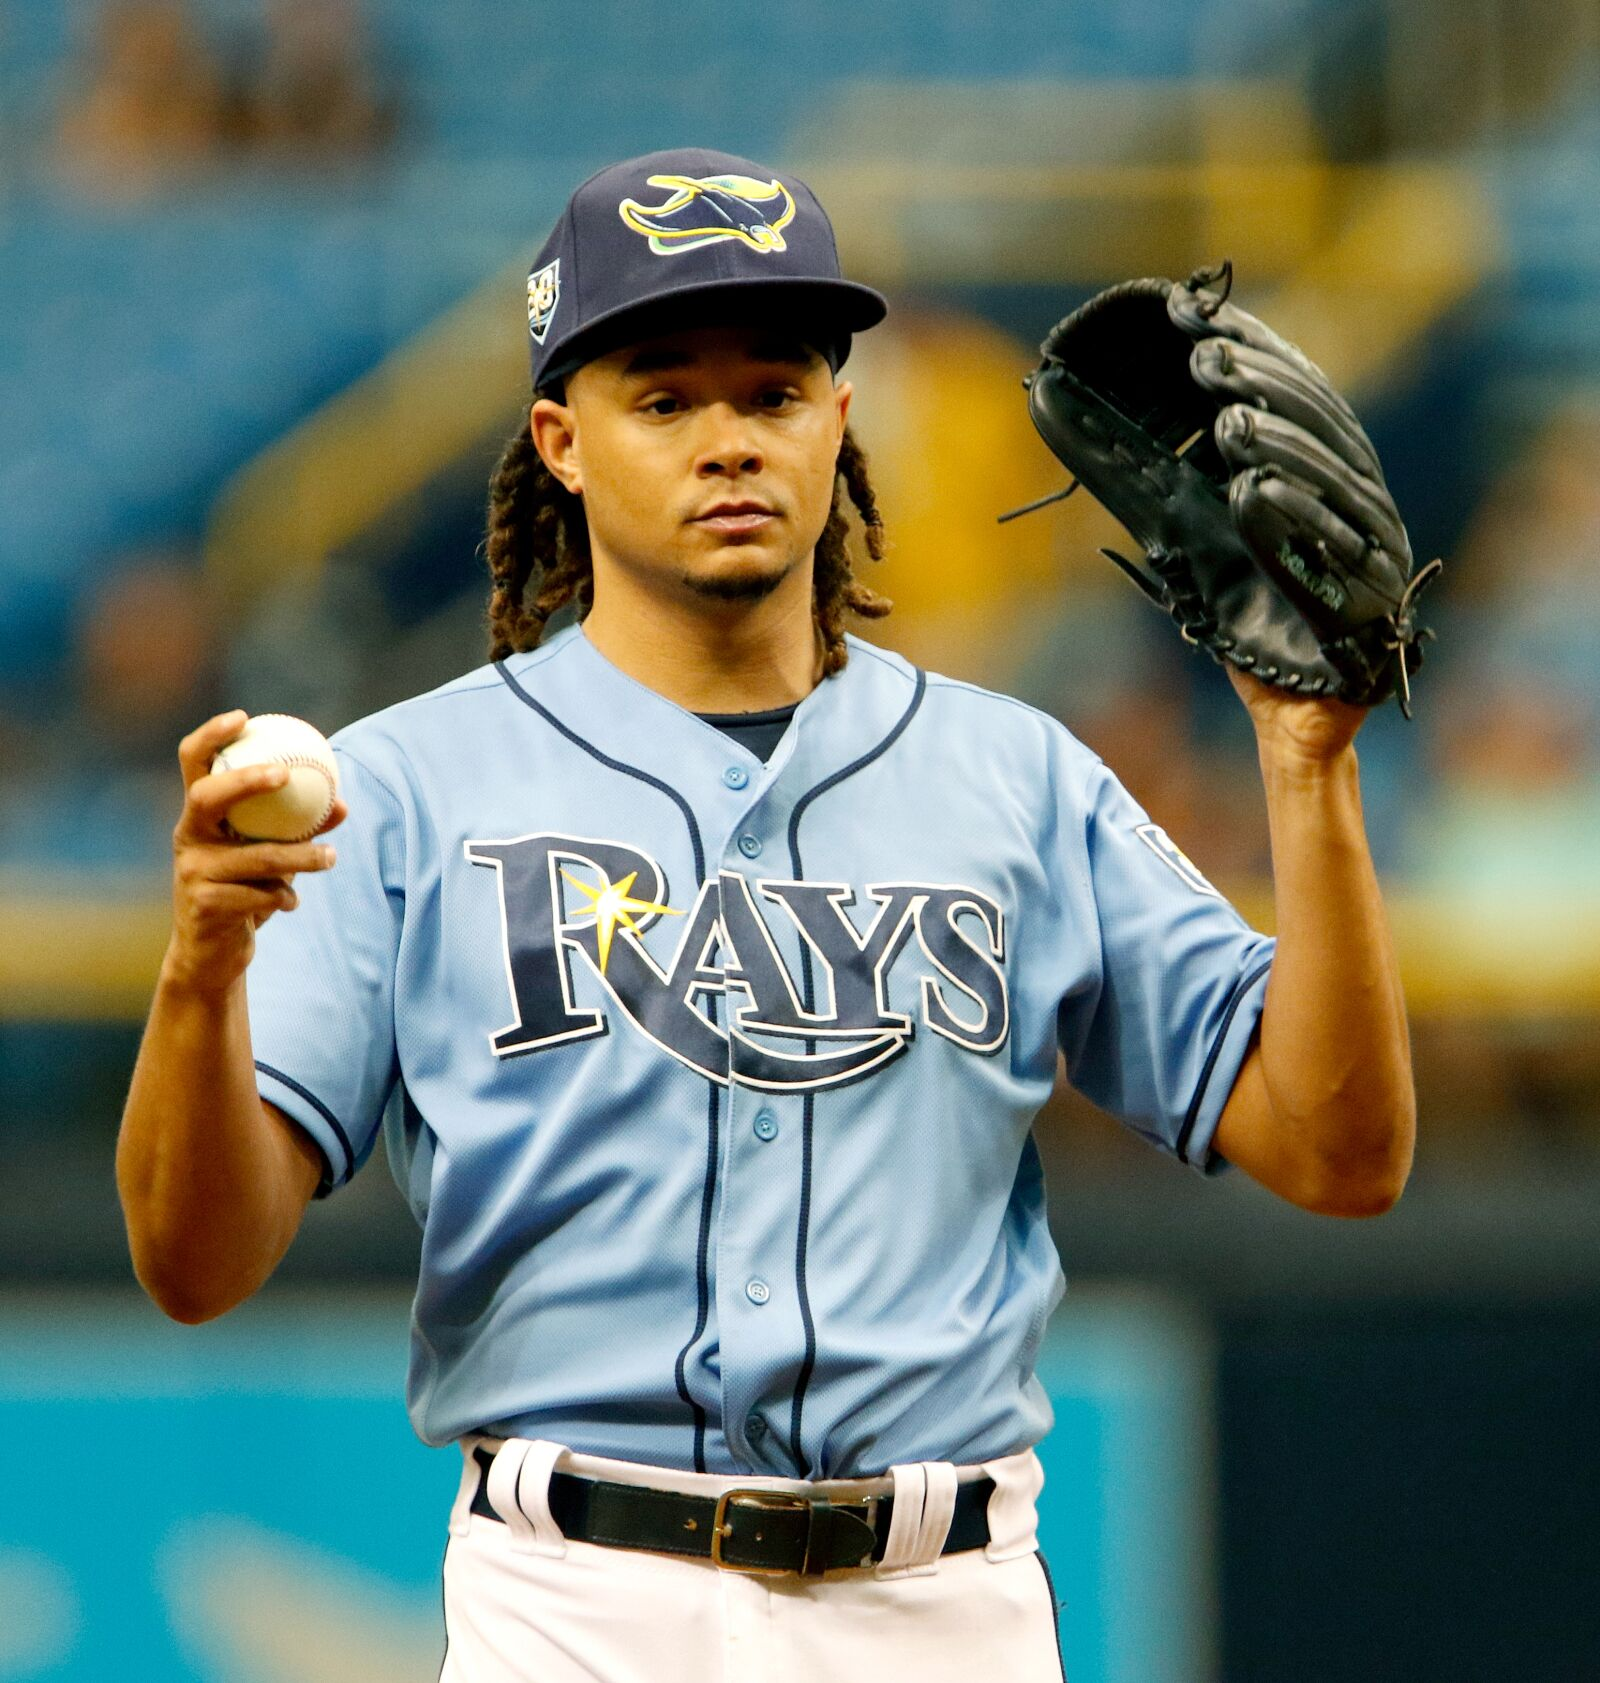 Mlb Rumors Analyzing All The Latest Whispers News And: St. Louis Cardinals: Trade For Archer If The Price Is Right